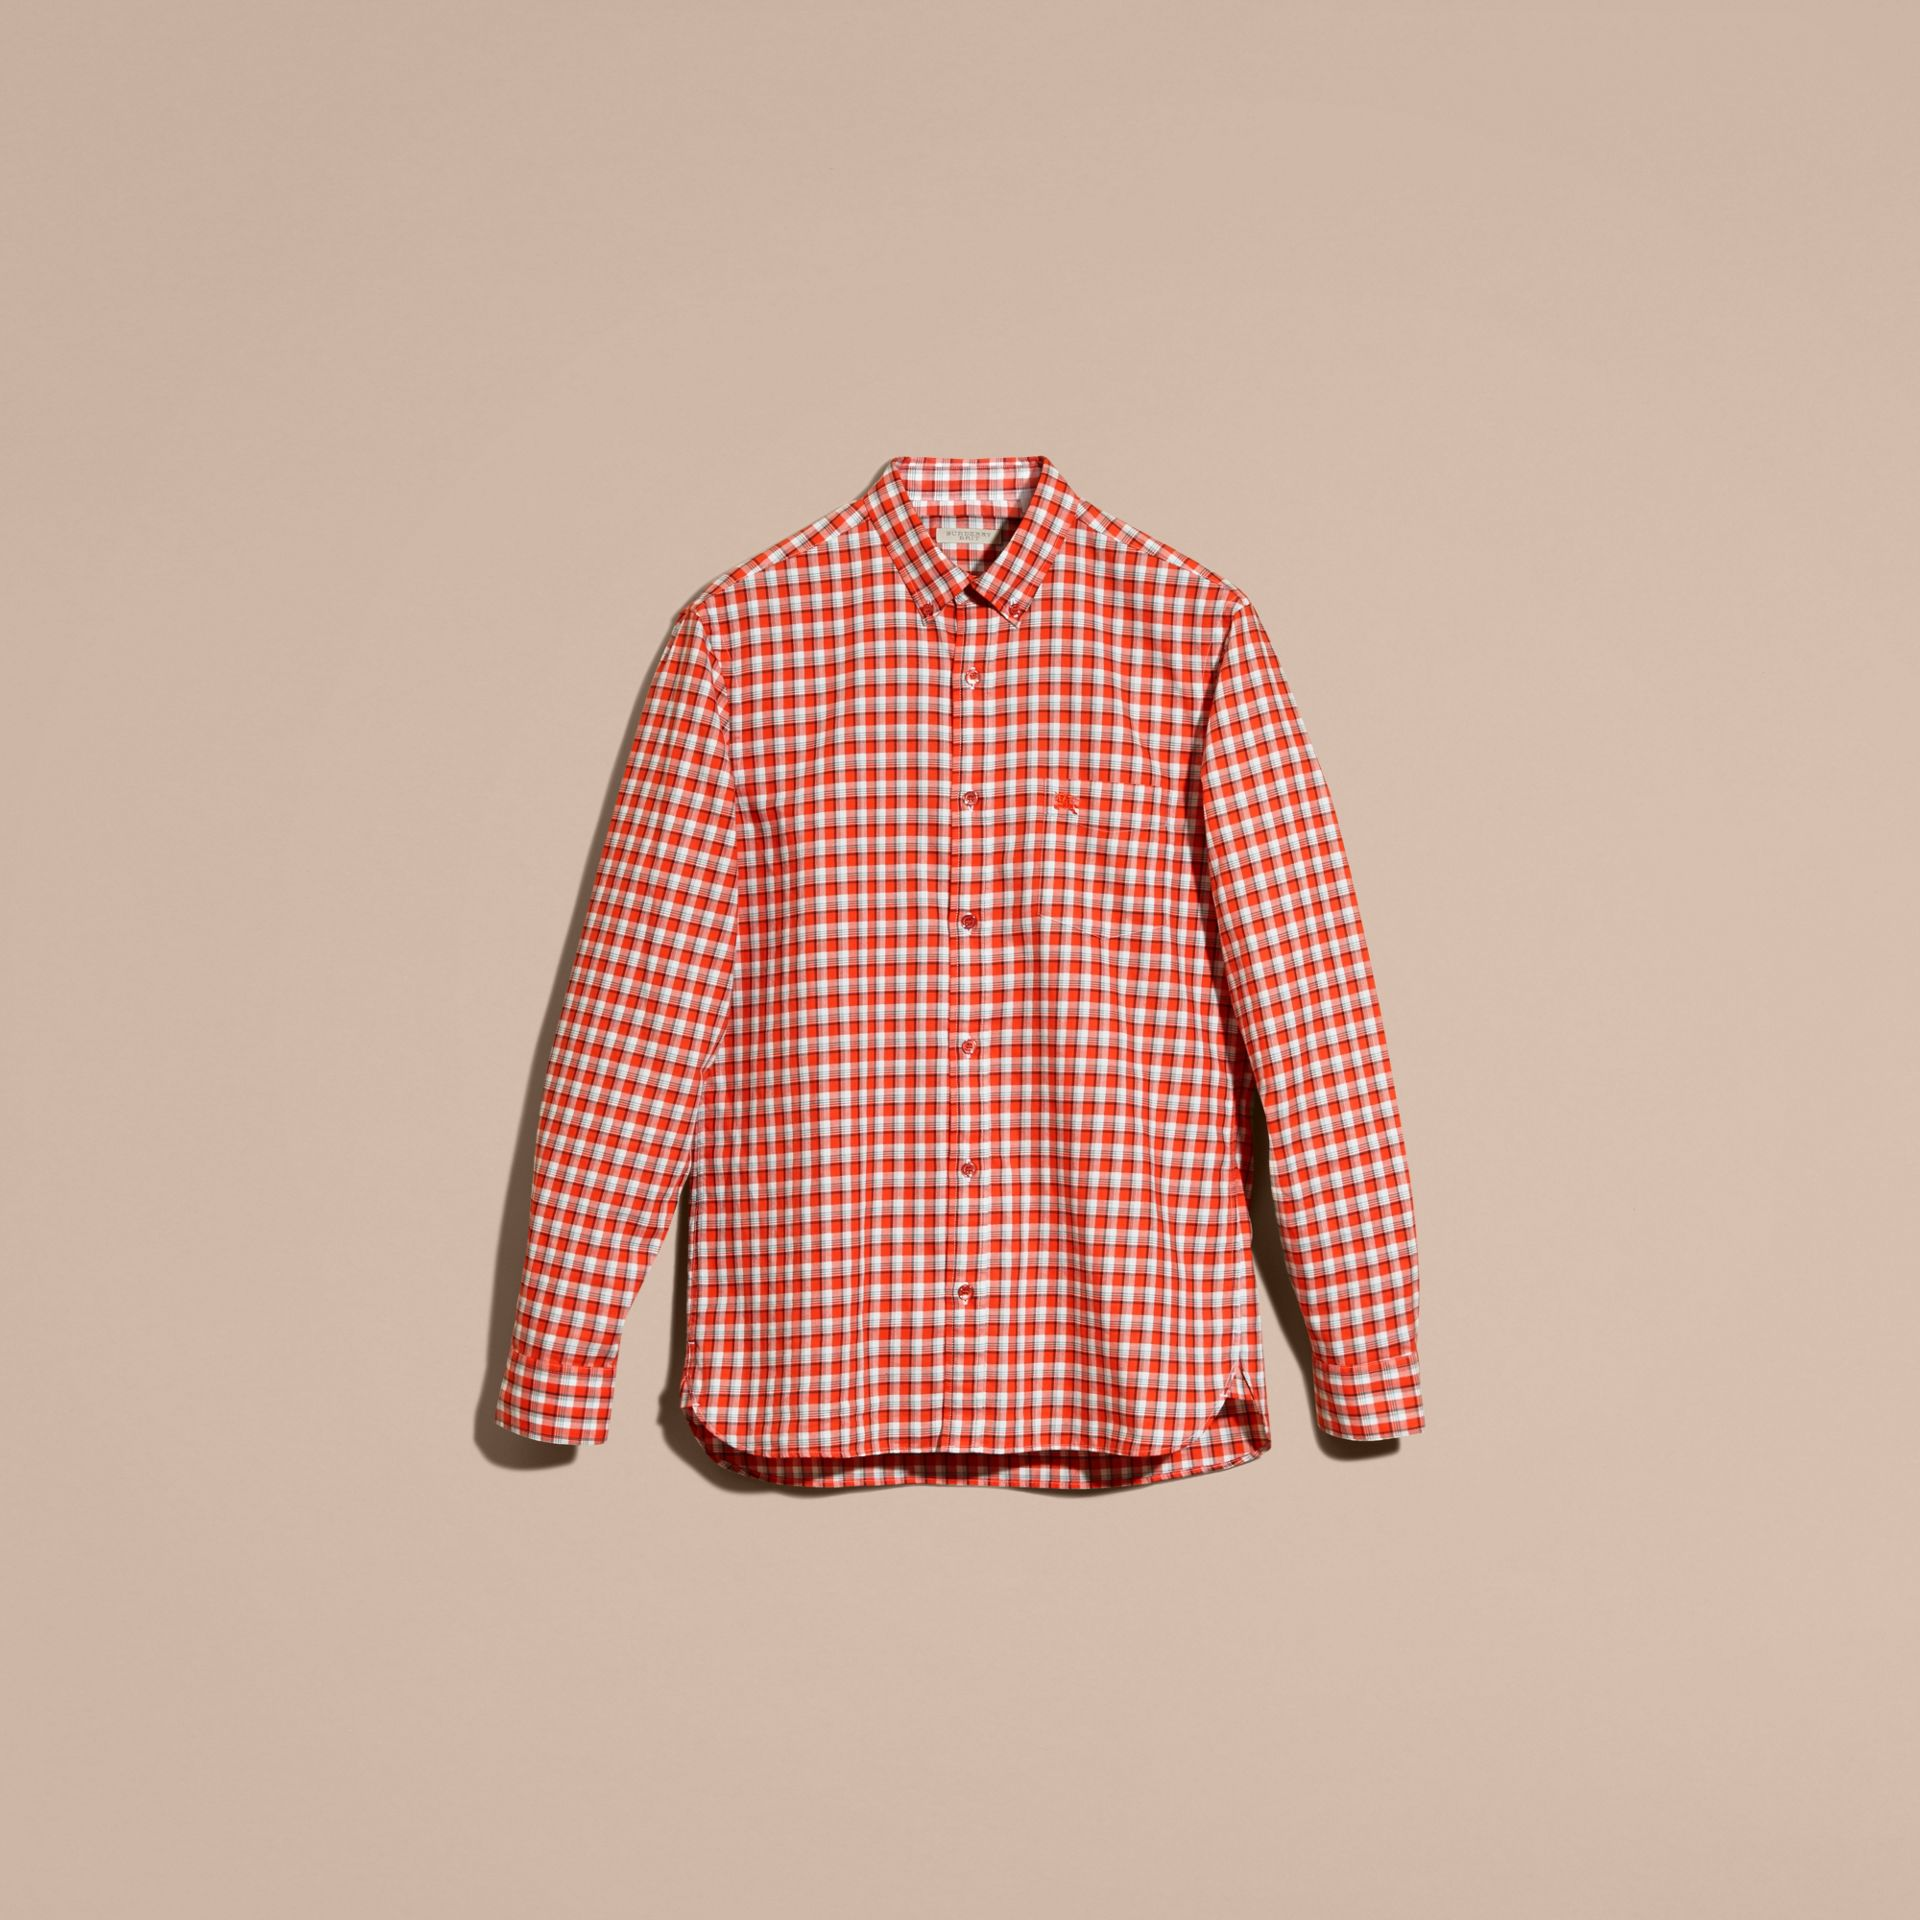 Parade red Gingham Check Cotton Twill Shirt Parade Red - gallery image 4